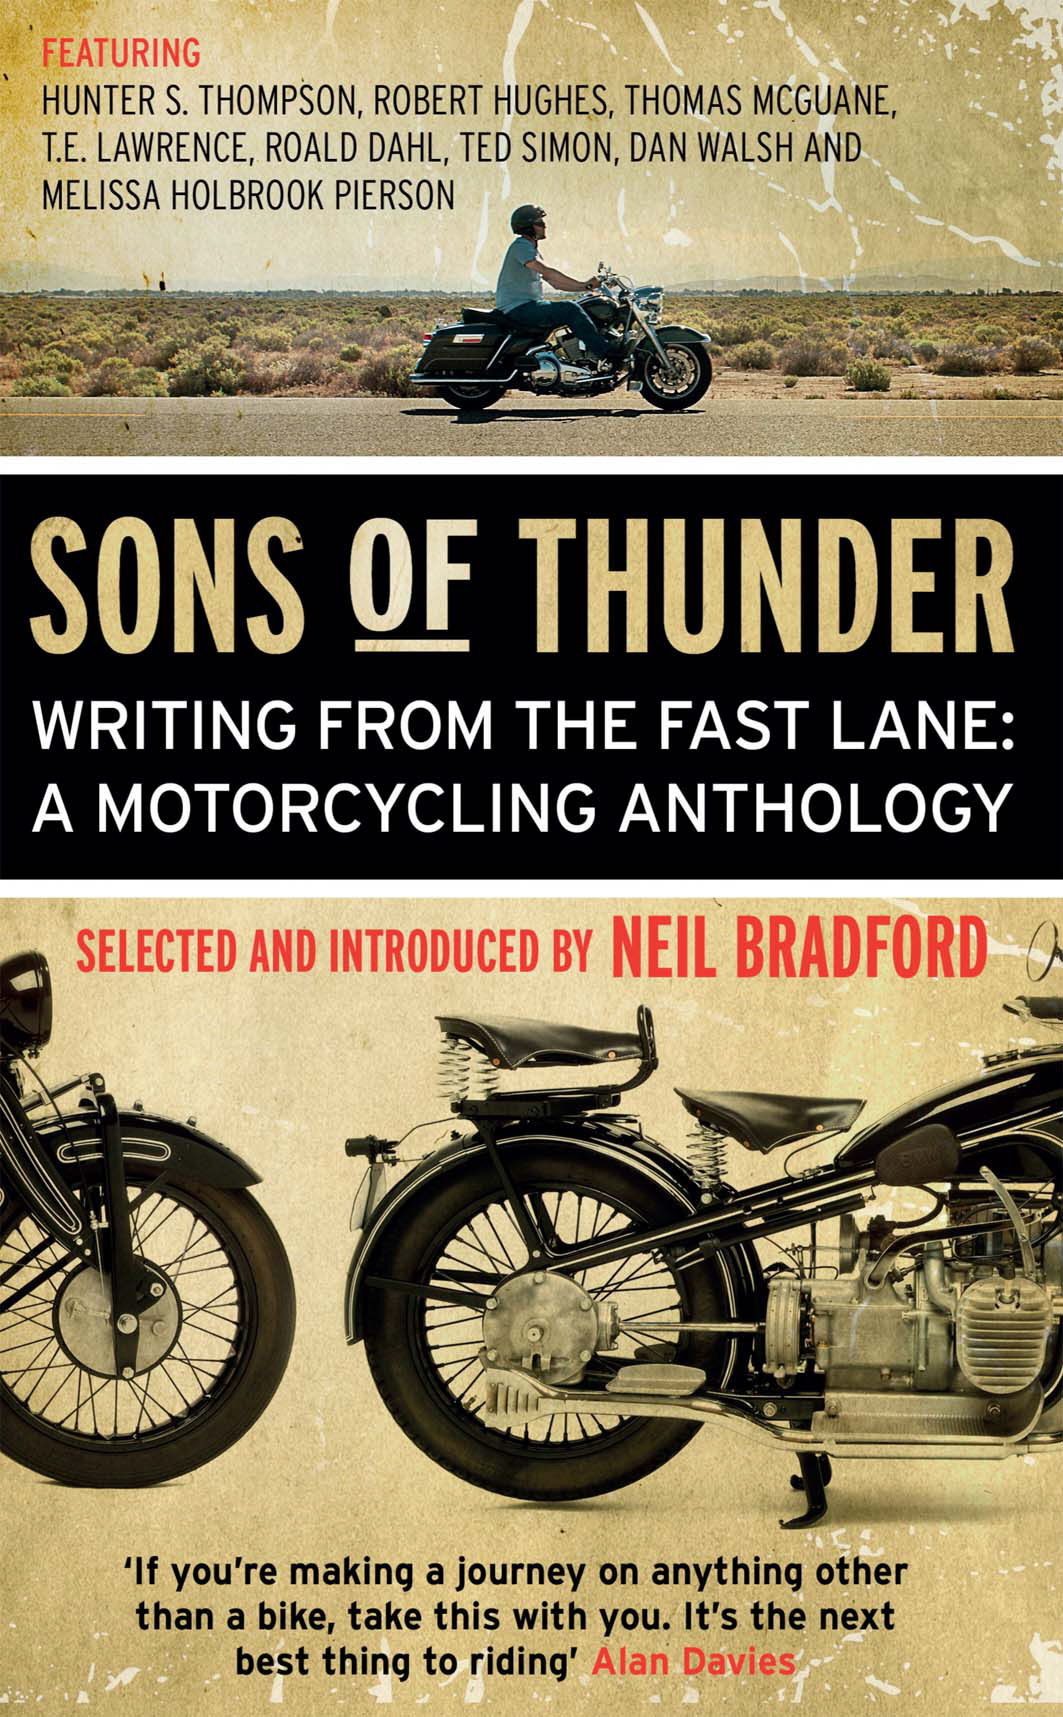 Sons of Thunder Writing from the Fast Lane: A Motorcycling Anthology